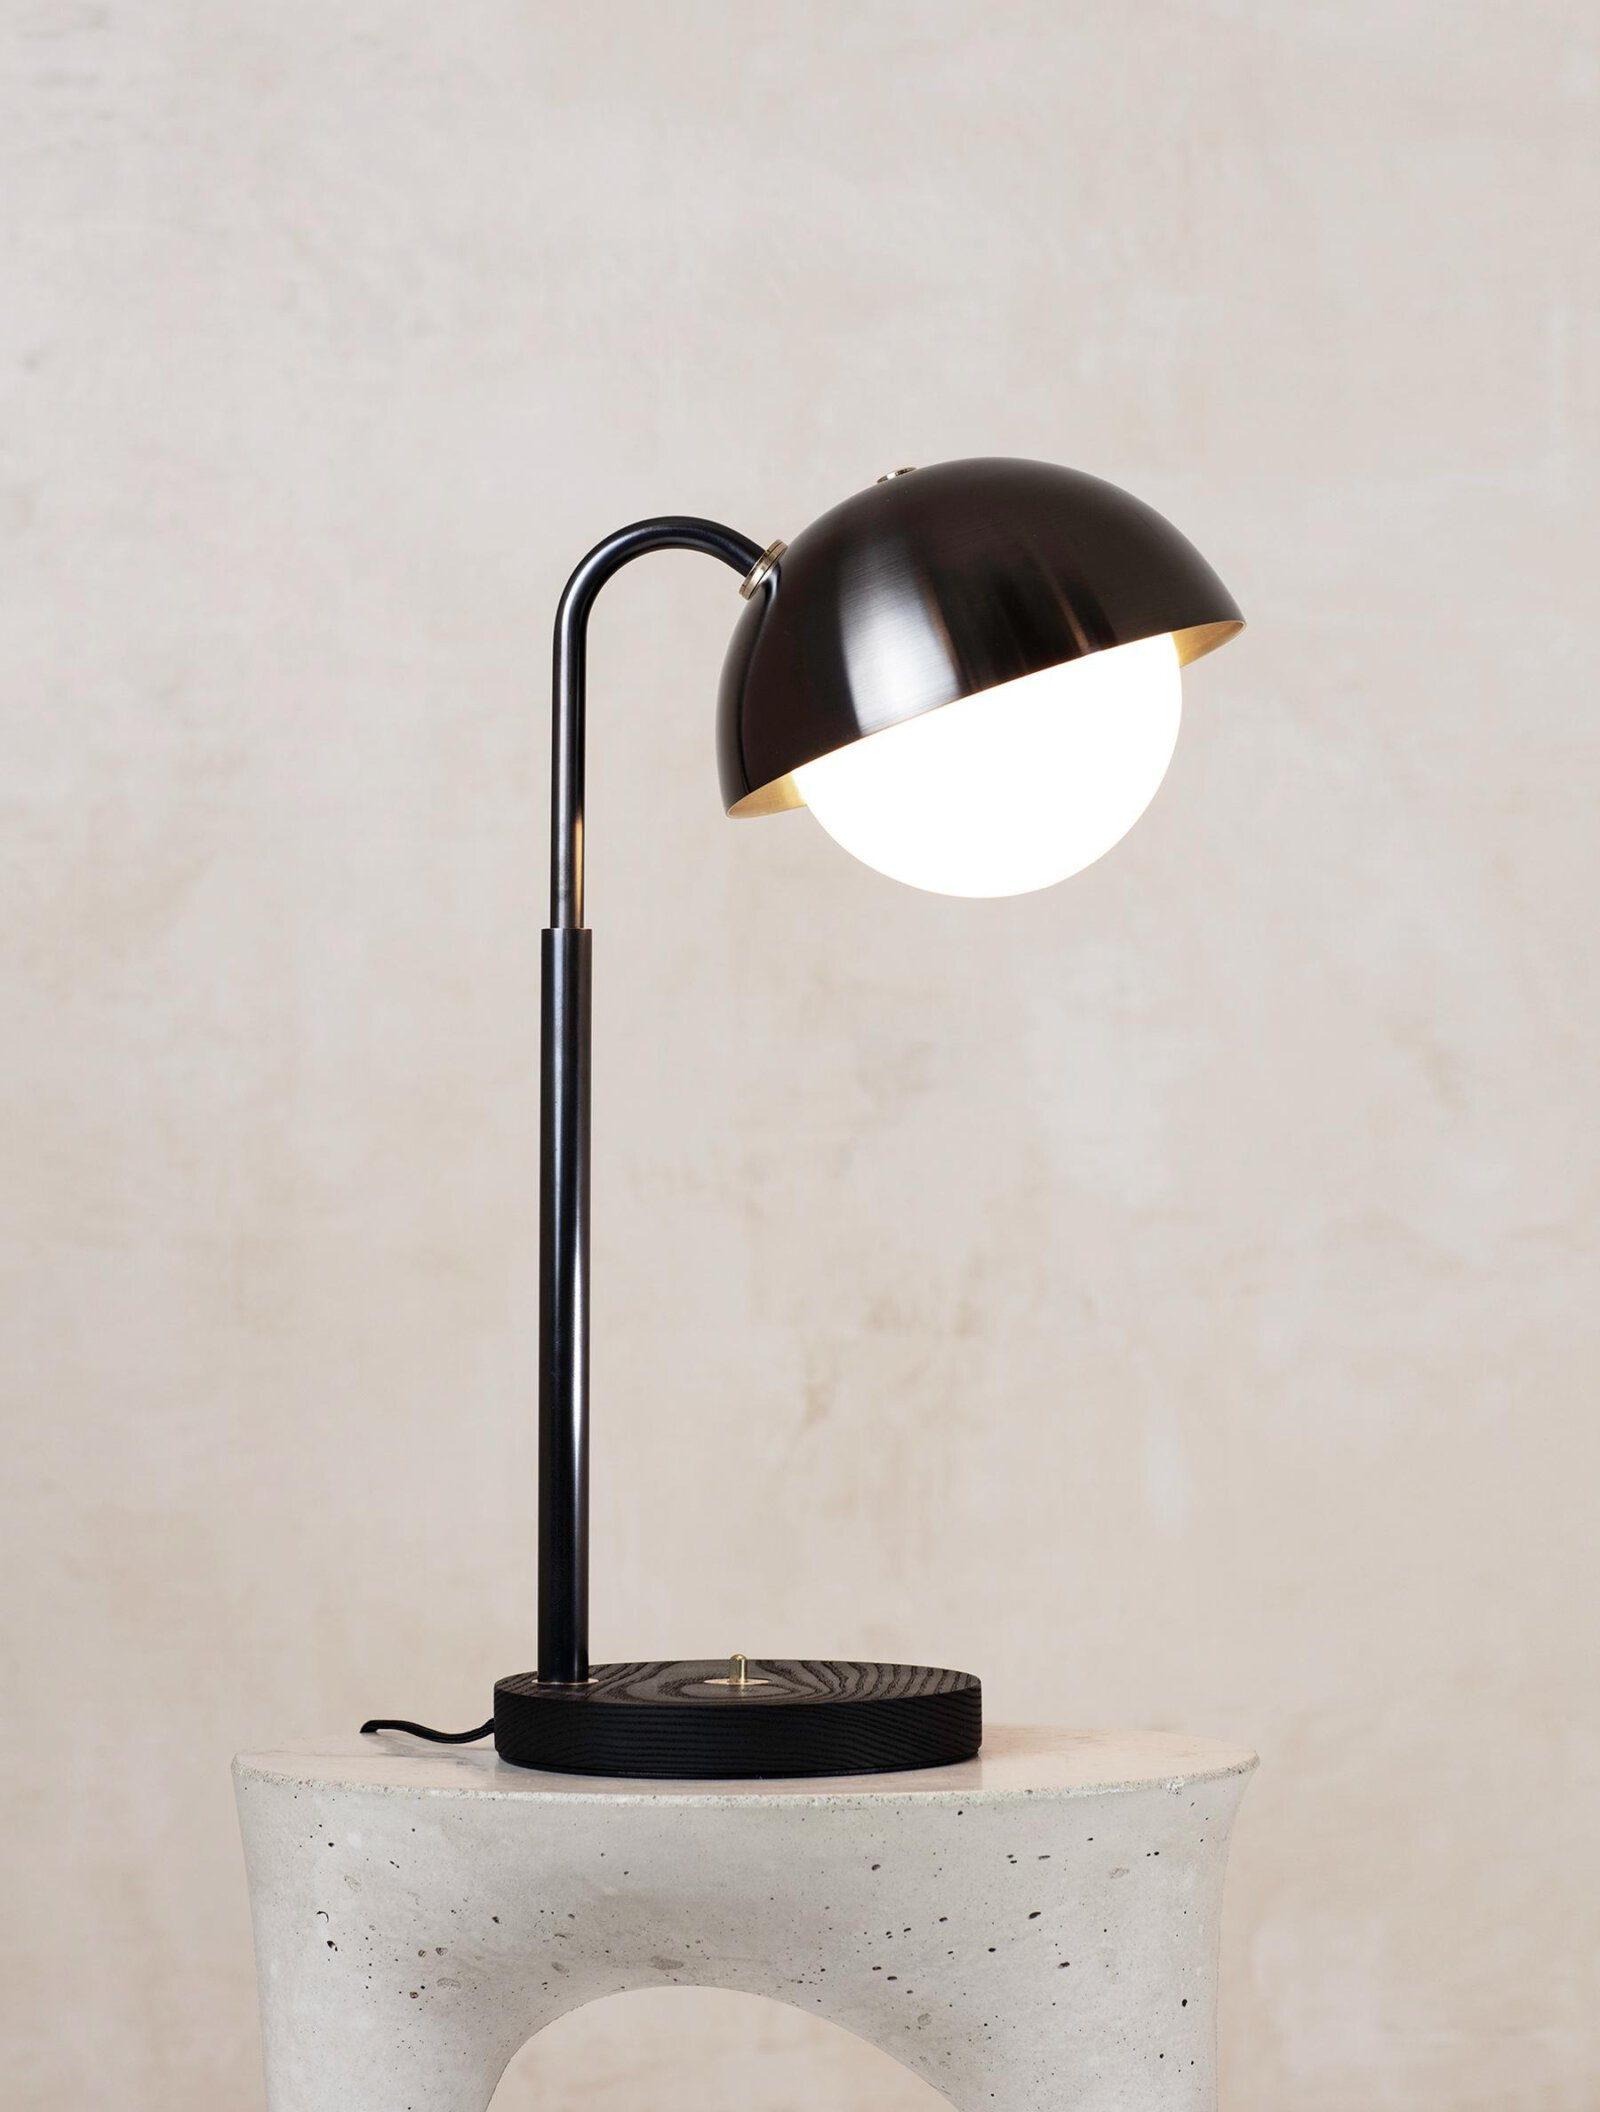 TinnappelMetz-allied-maker-Dome-Table-Lamp-03